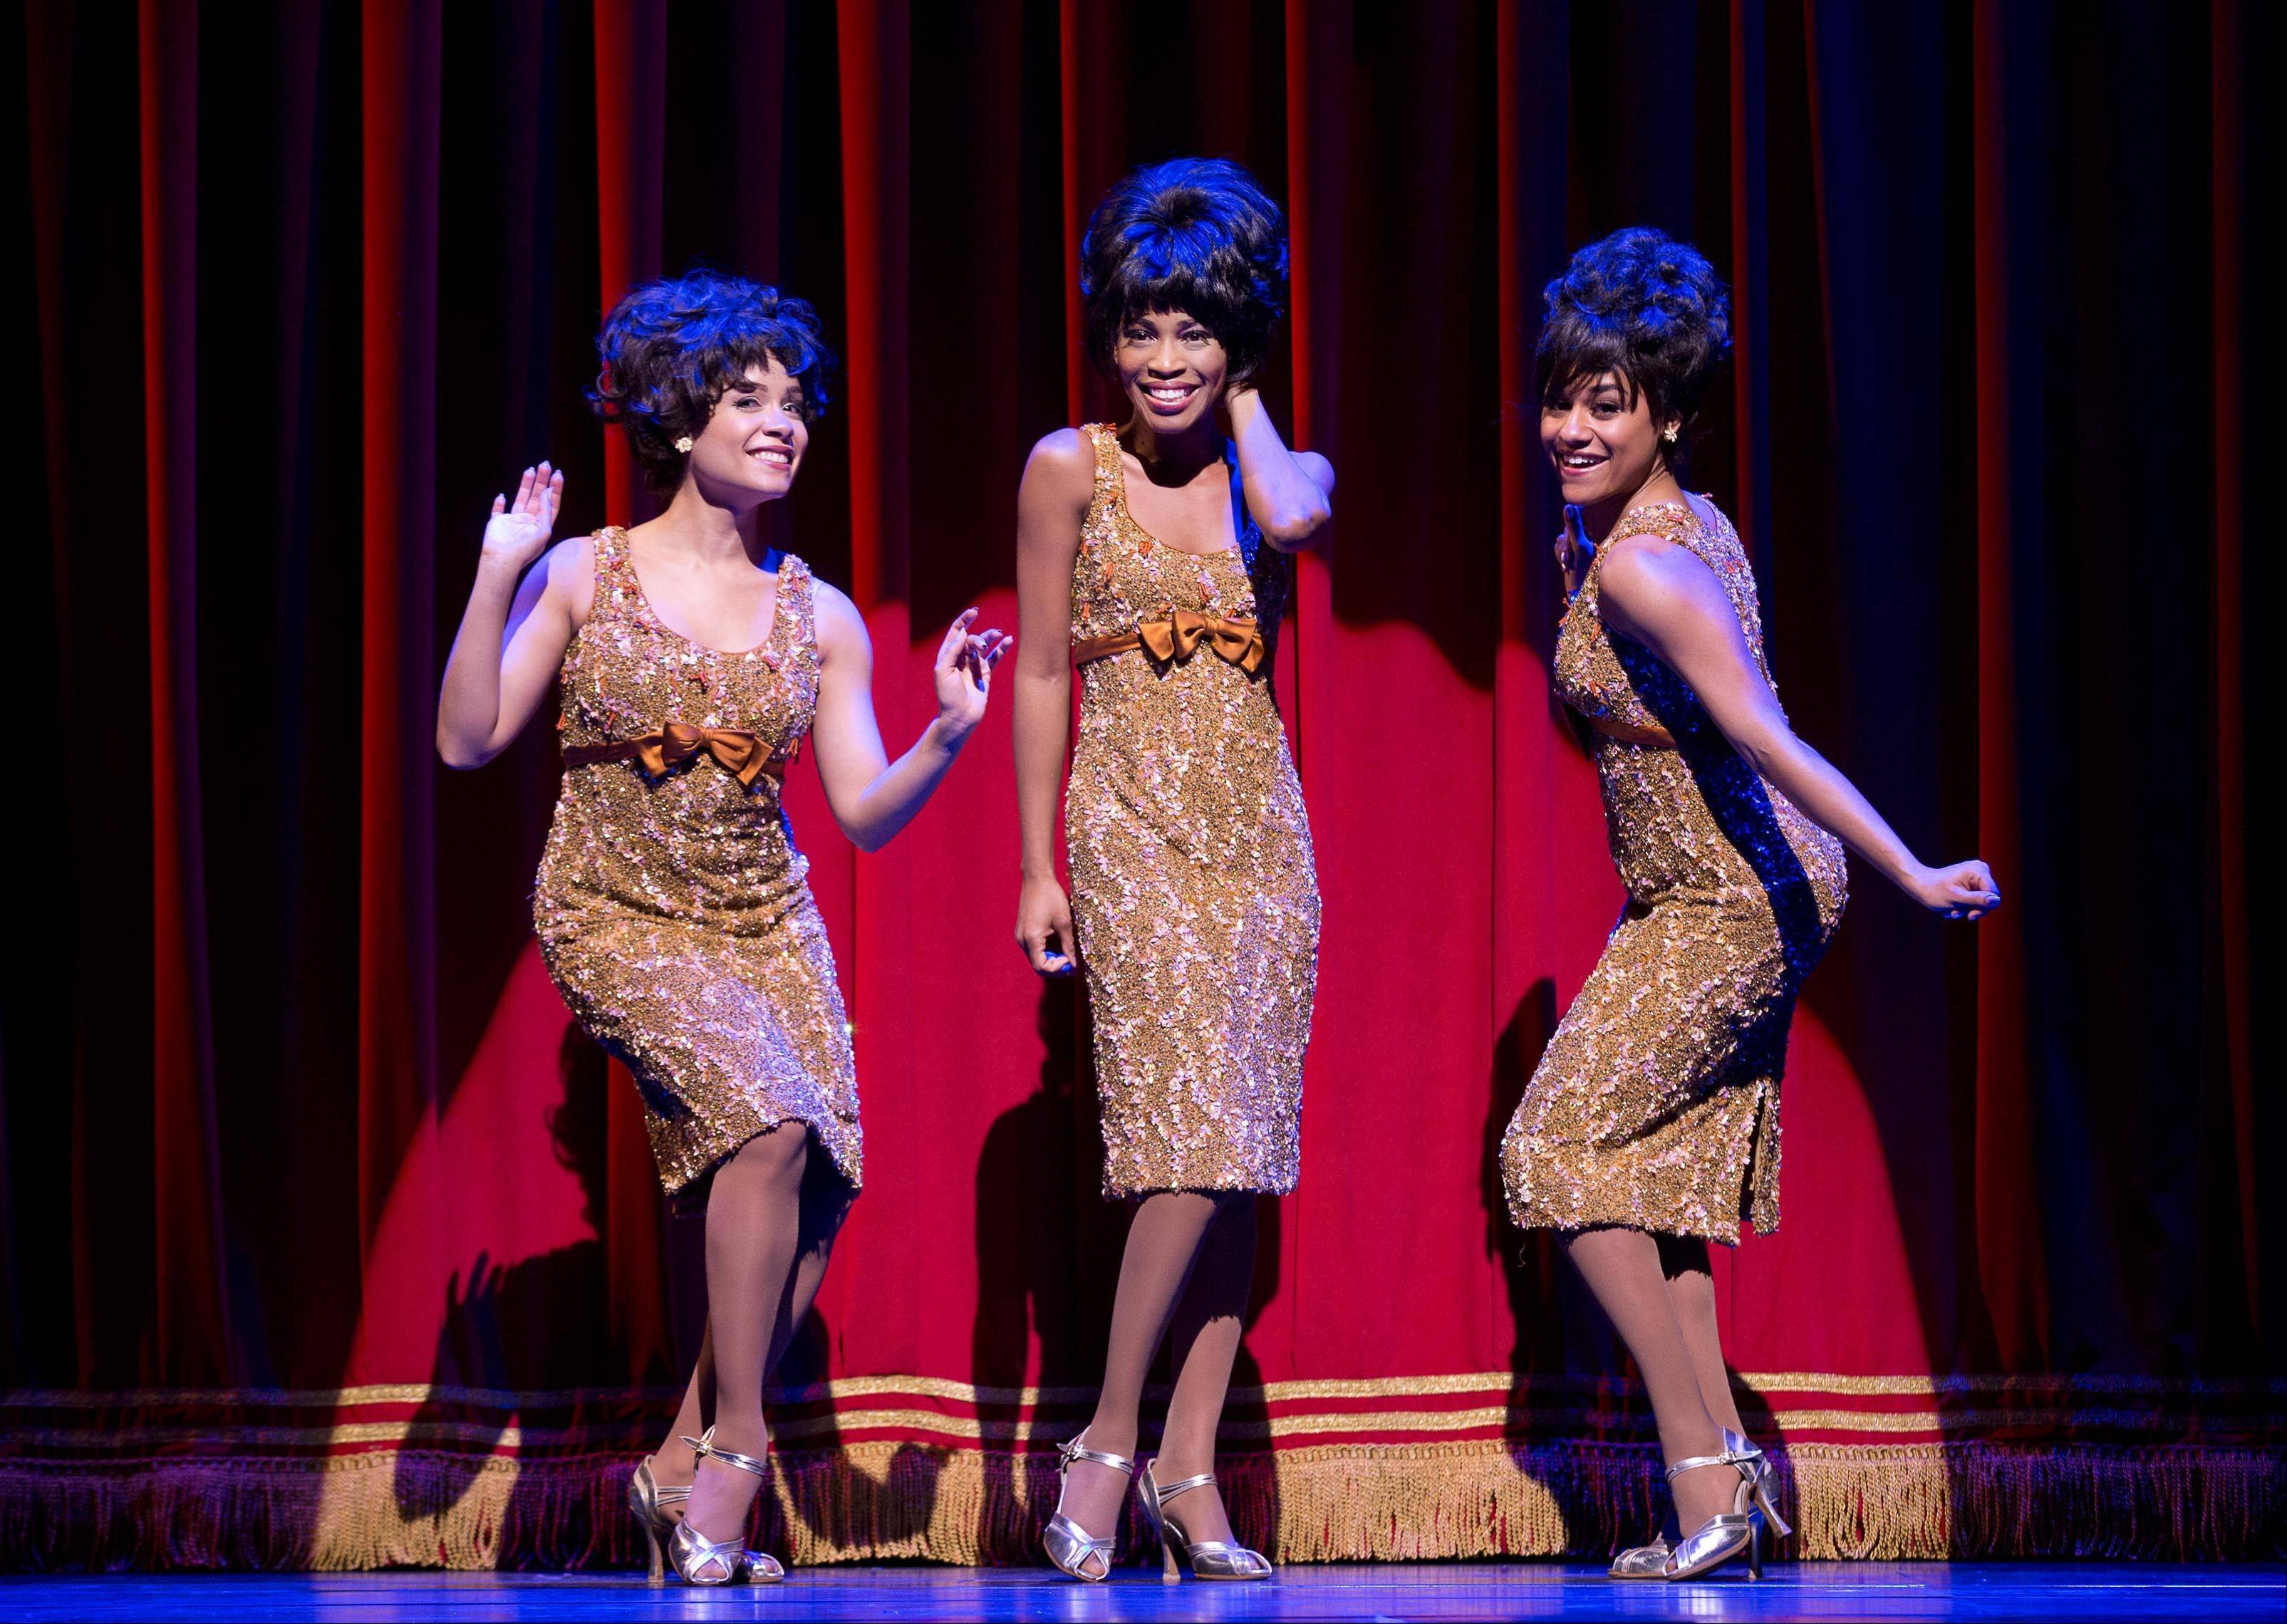 Sydney Morton, left, plays Forence Ballard, Valisia LeKae is Diana Ross and Ariana DeBose portrays Mary Wilson of The Supremes in �Motown: The Musical,� performing at the Lunt-Fontanne Theatre in New York. Producers of �Motown the Musical� said Thursday that the show�s national tour will play Detroit�s Fisher Theatre.